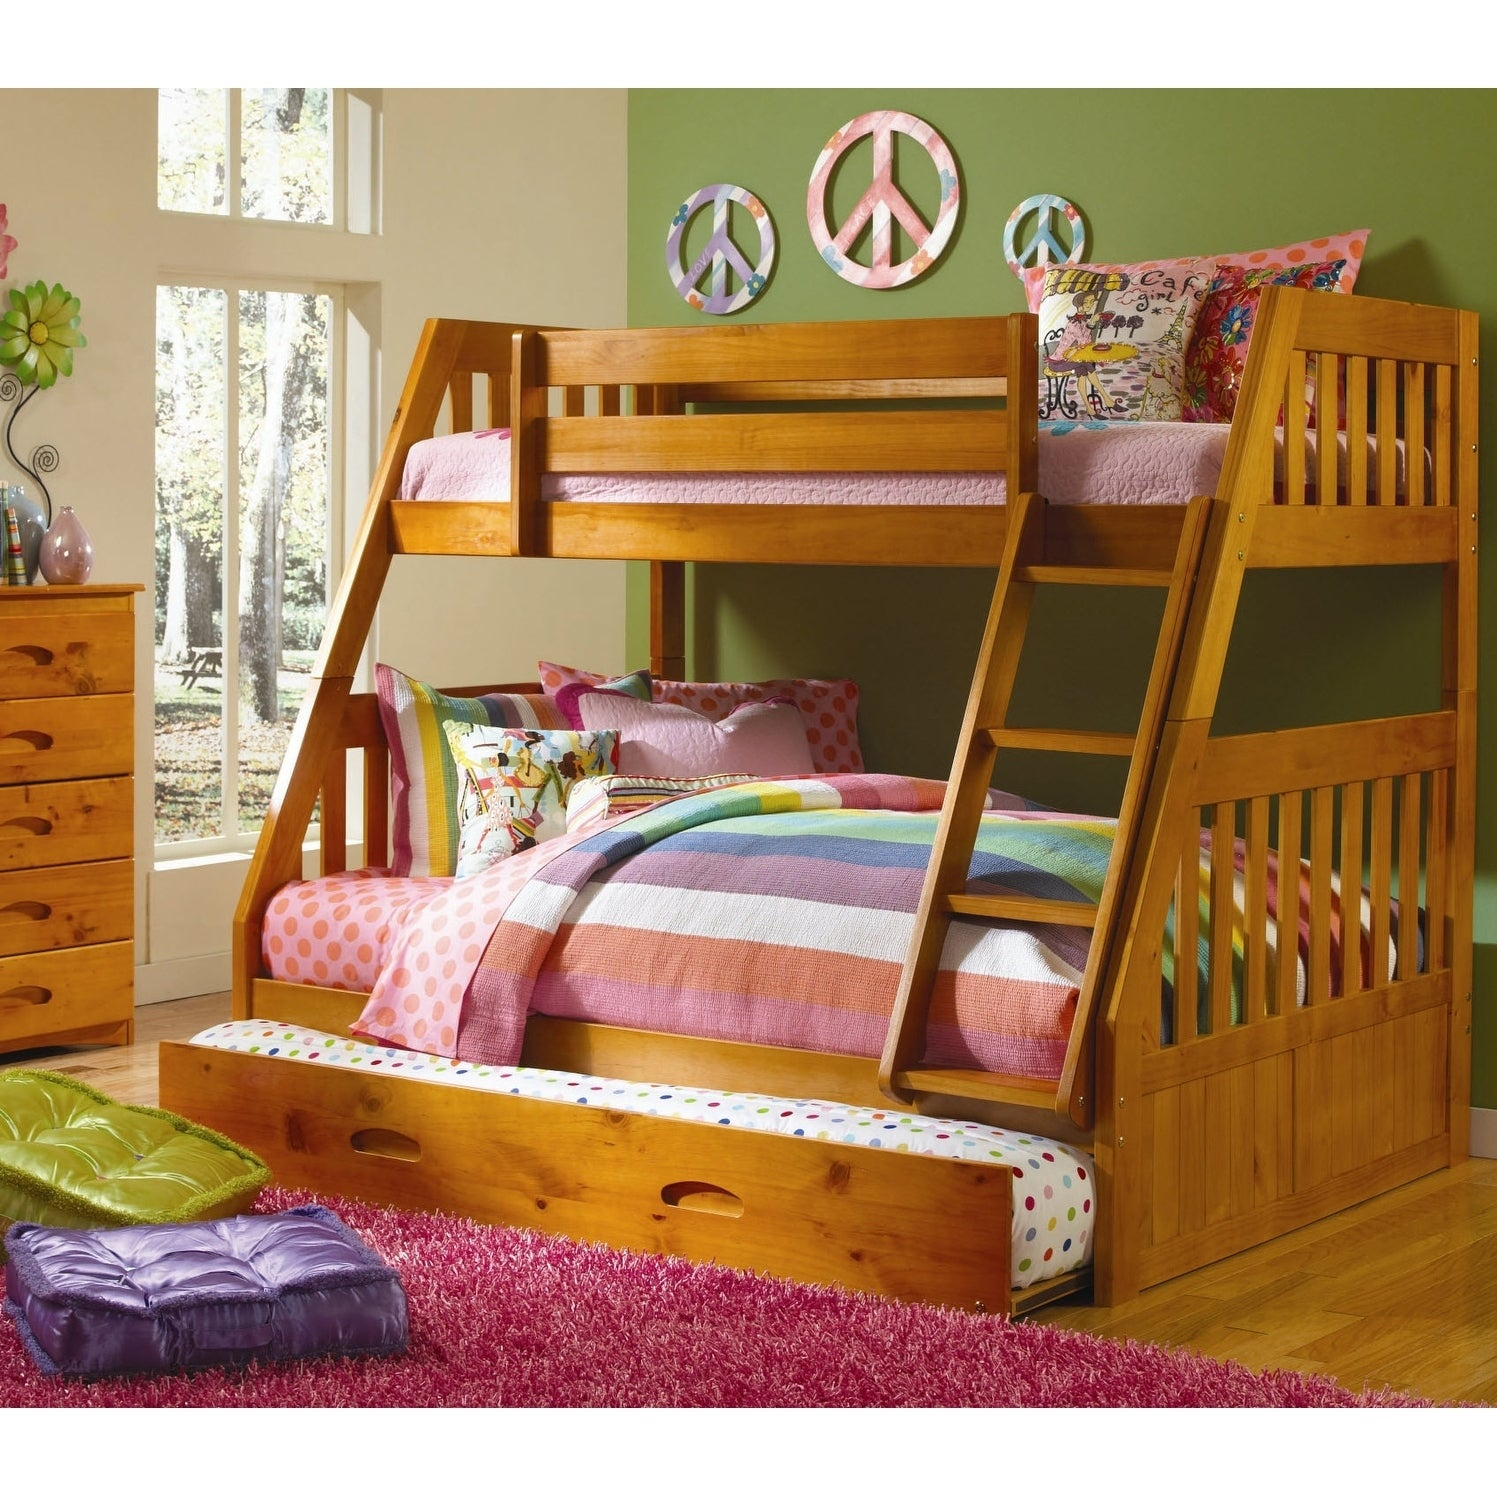 American Furniture Clics Honey Pine Staircase Twin Full Bunk Bed With Roll Out Trundle